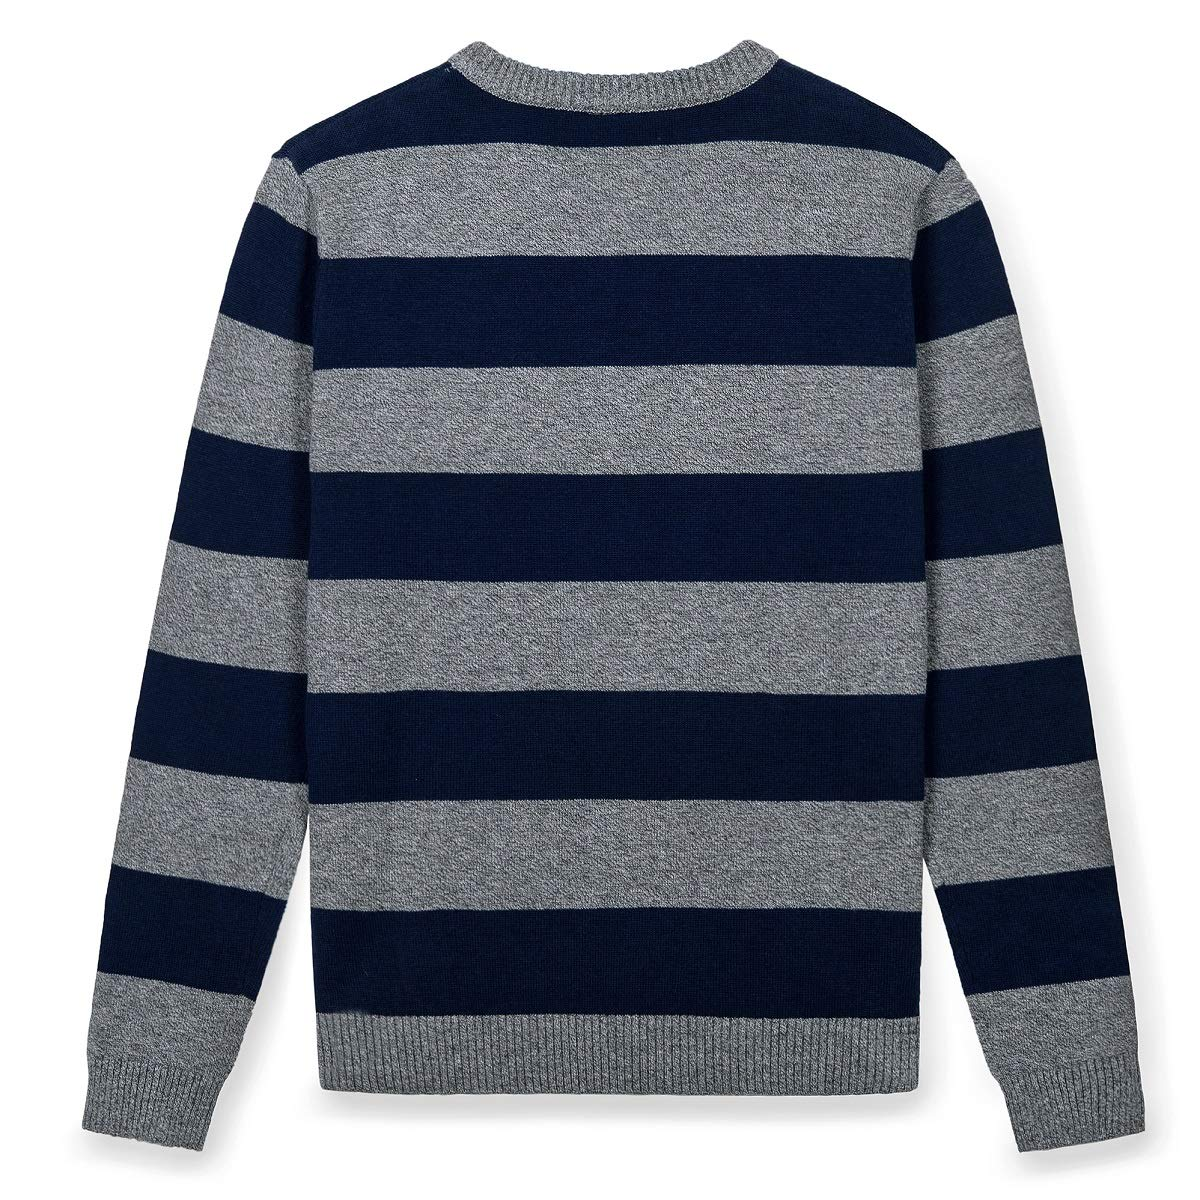 Kid Nation Kids Sweater Long Sleeve Crew Neck Pullover Stripe Cotton Knit Sweater for Boys or Girls